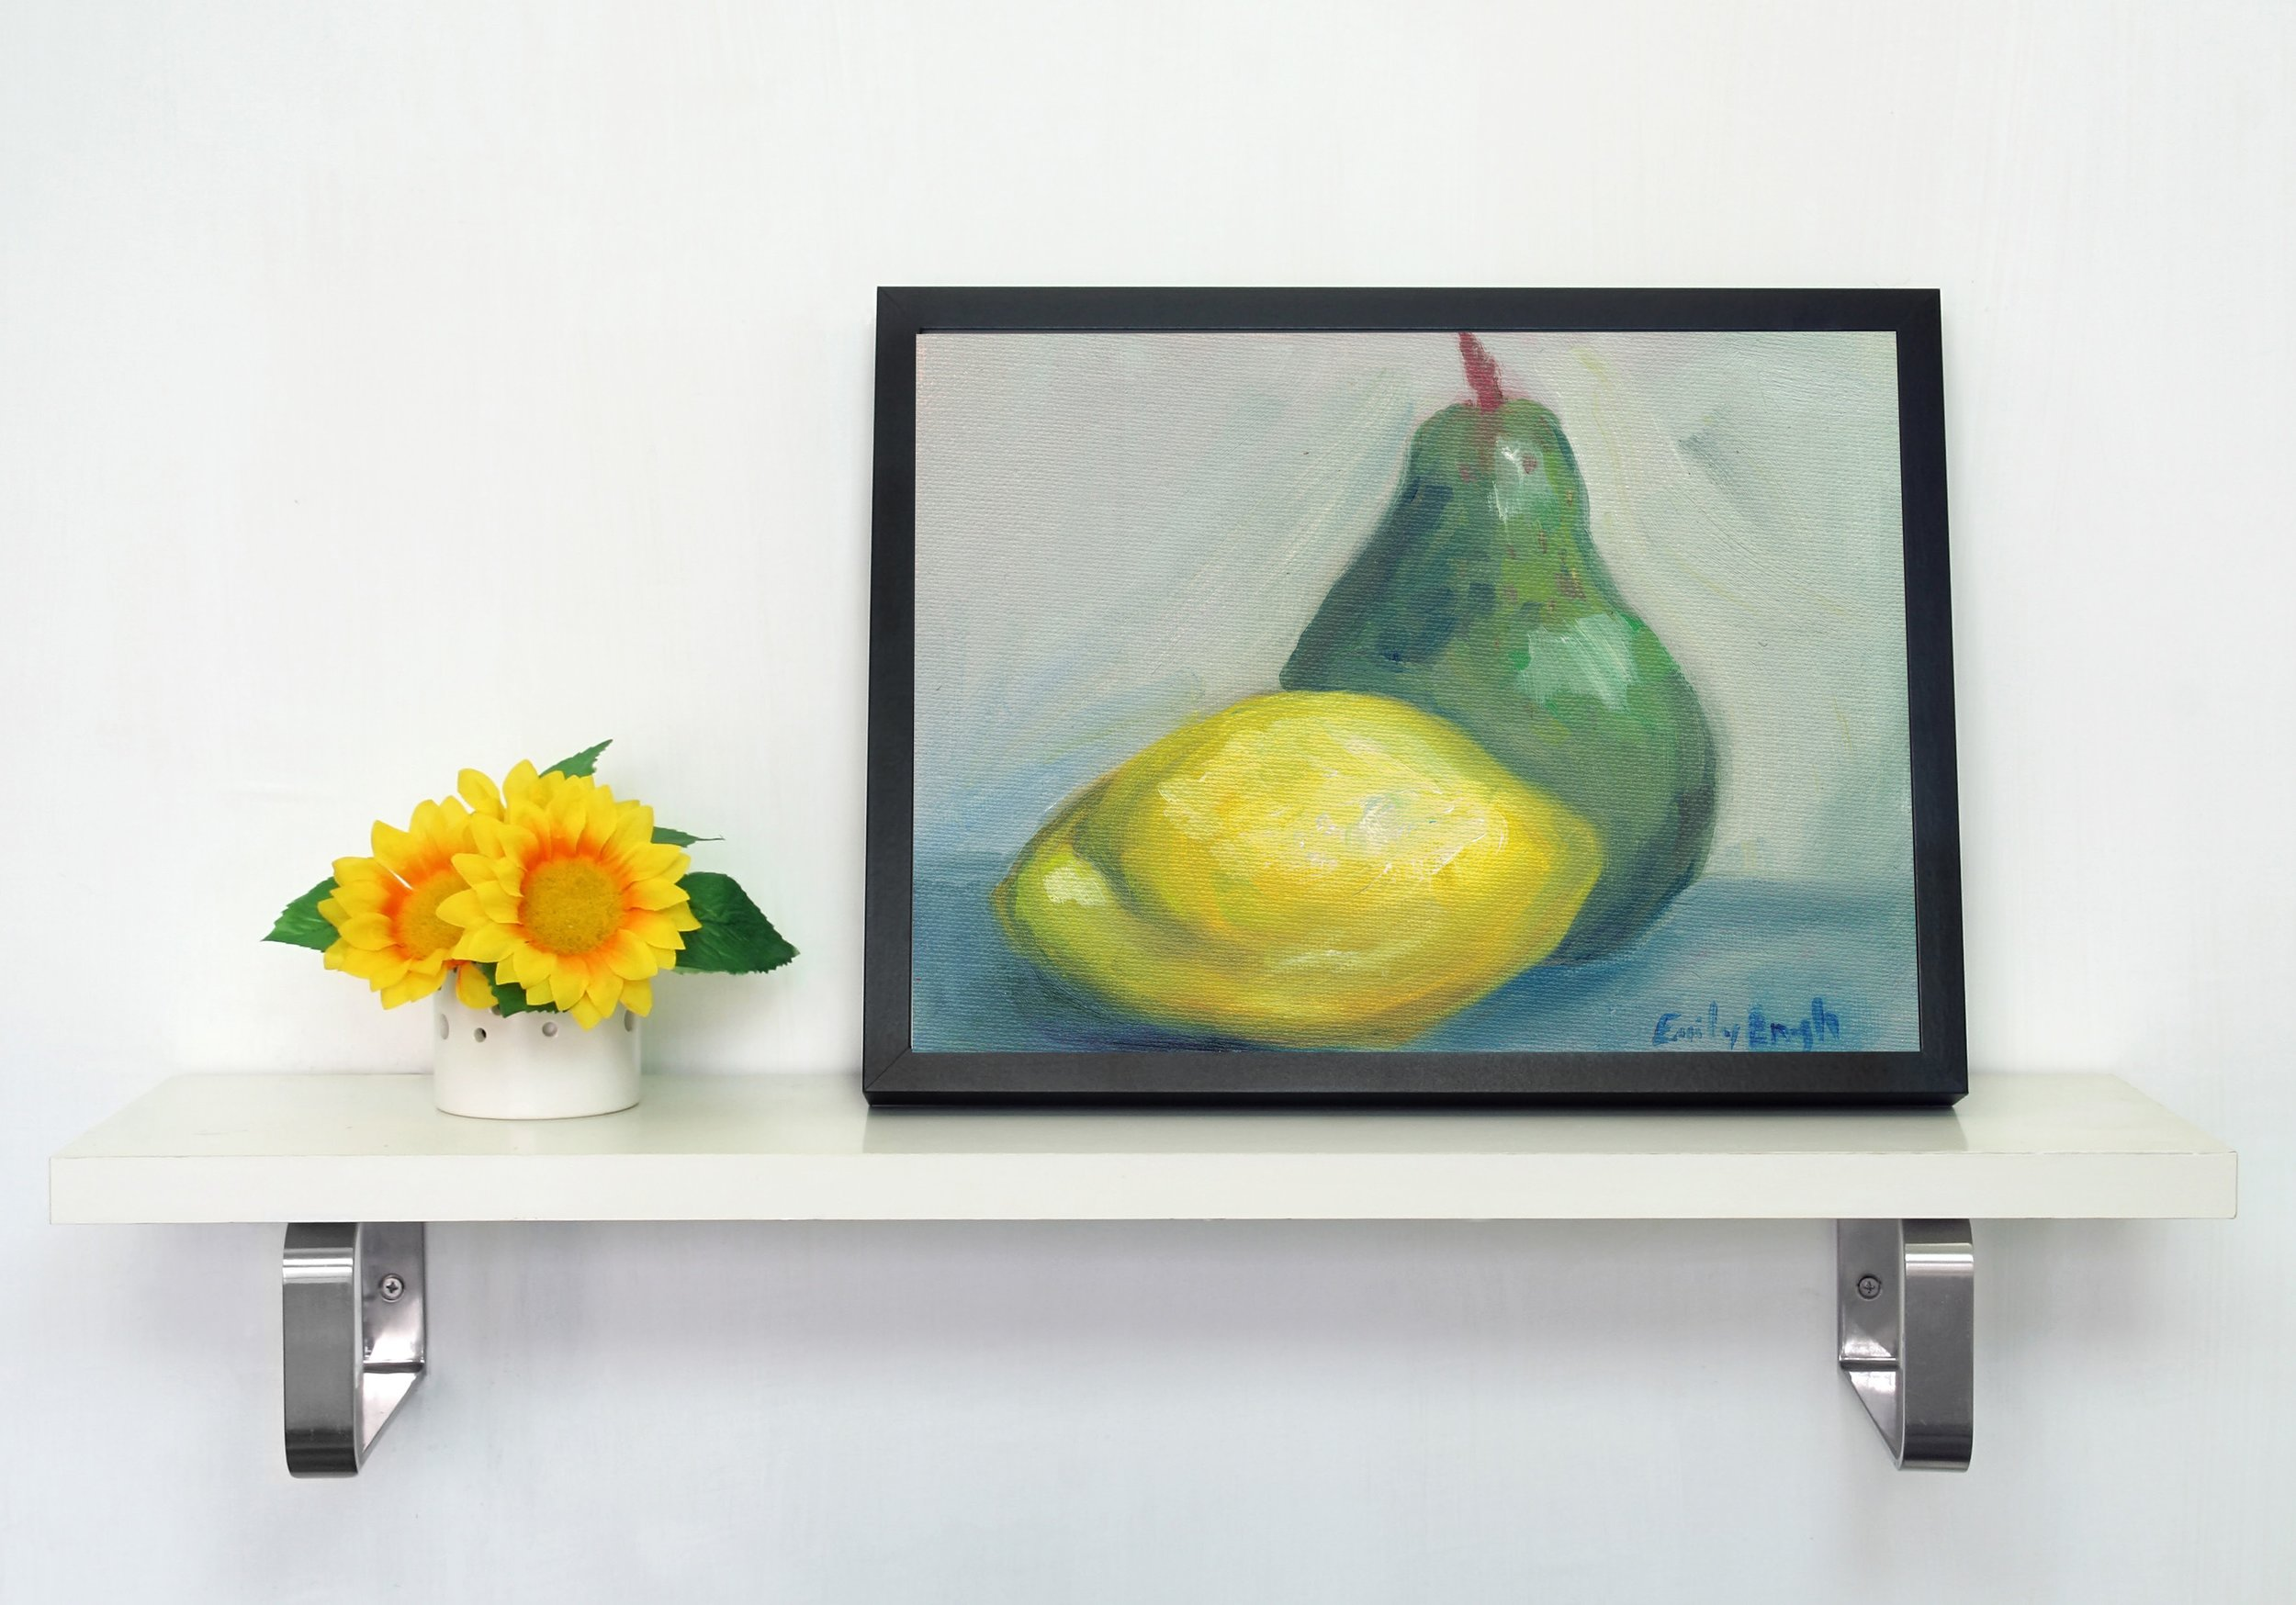 Pear and a Lemon.jpg